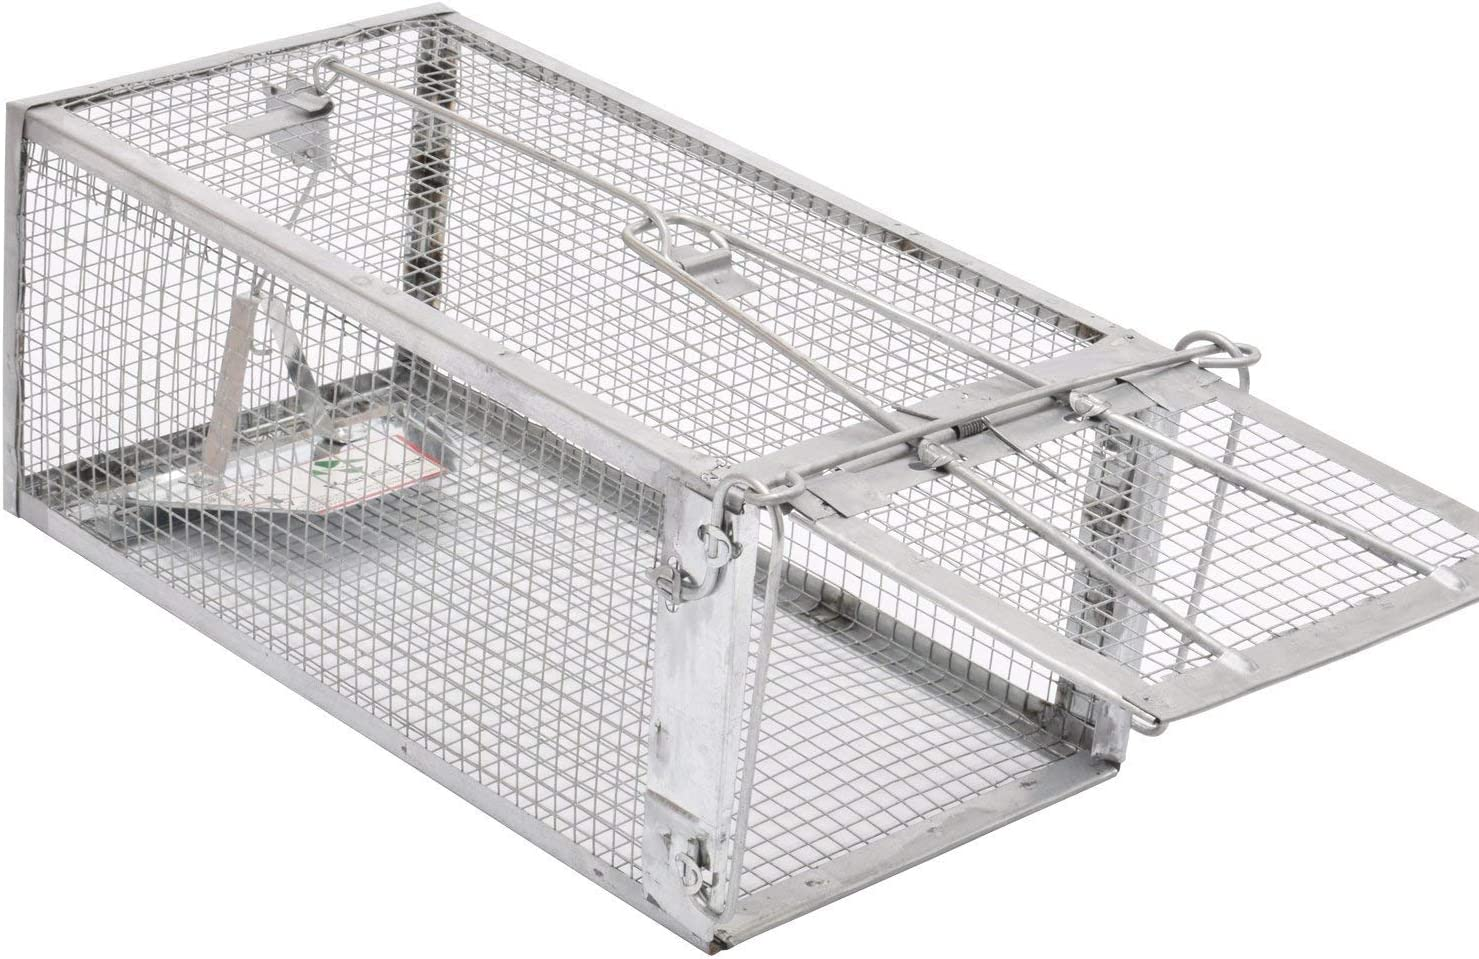 Kensizer Small Animal Humane Live Cage Rat Mouse Chipmunk Rodent Voles Hamsters Trap That Work For Indoor And Outdoor Amazon Ca Patio Lawn Garden